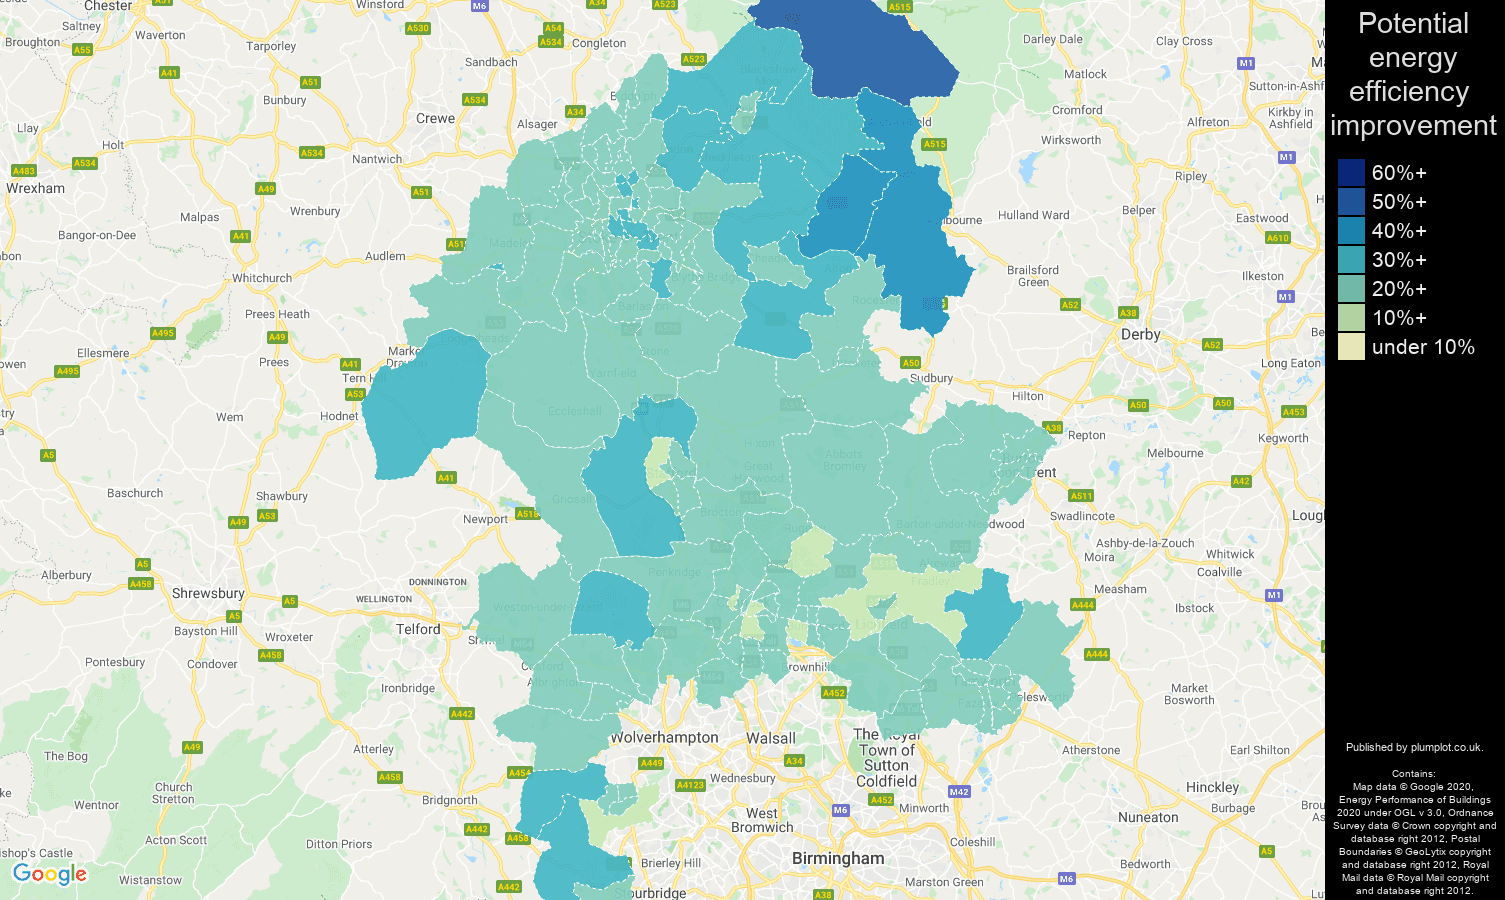 Staffordshire map of potential energy efficiency improvement of houses